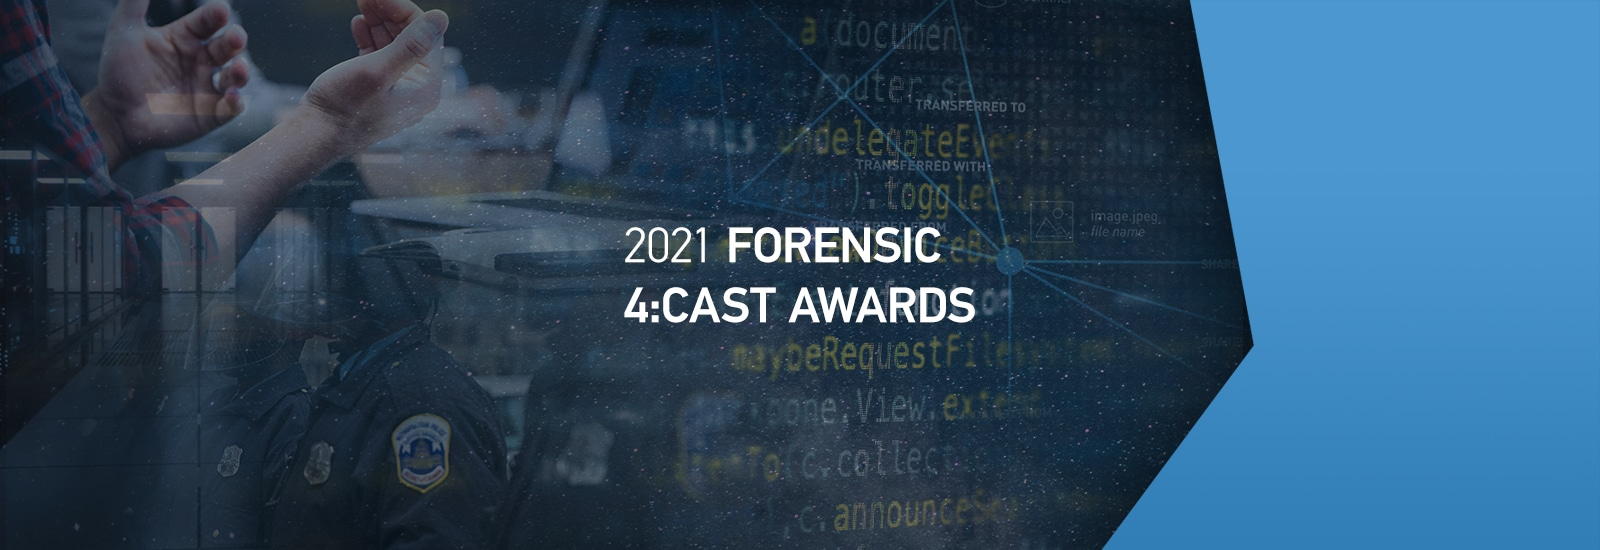 Forensic 4:cast Awards